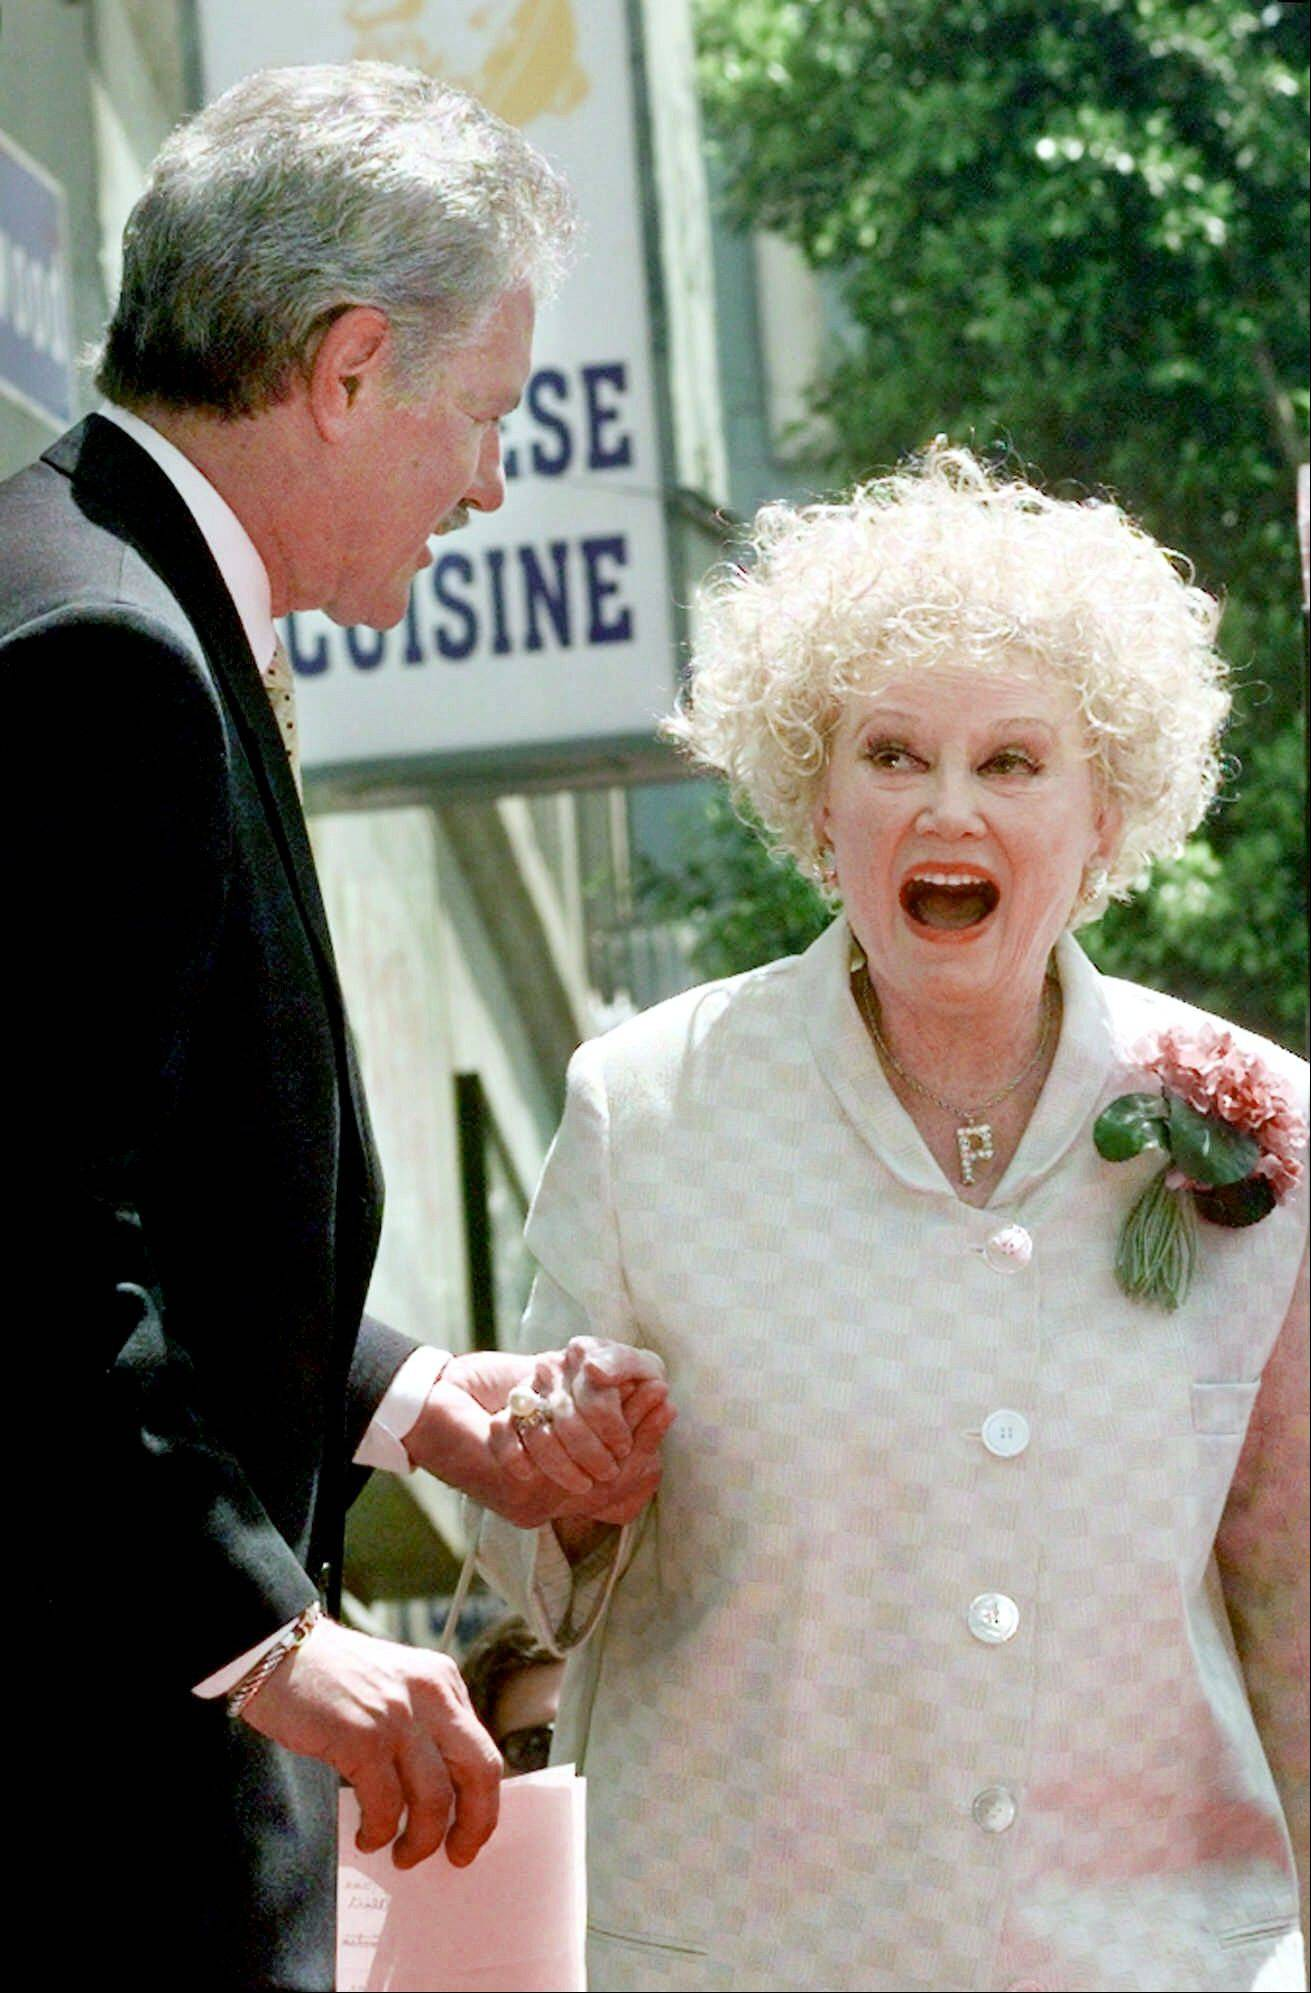 Associated Press/May 17, 1999Emmy award winning game show host, Alex Trebek greets actress and comedian Phyllis Diller before receiving his newly-dedicated star on the Hollywood Walk of Fame in the Hollywood section of Los Angeles.